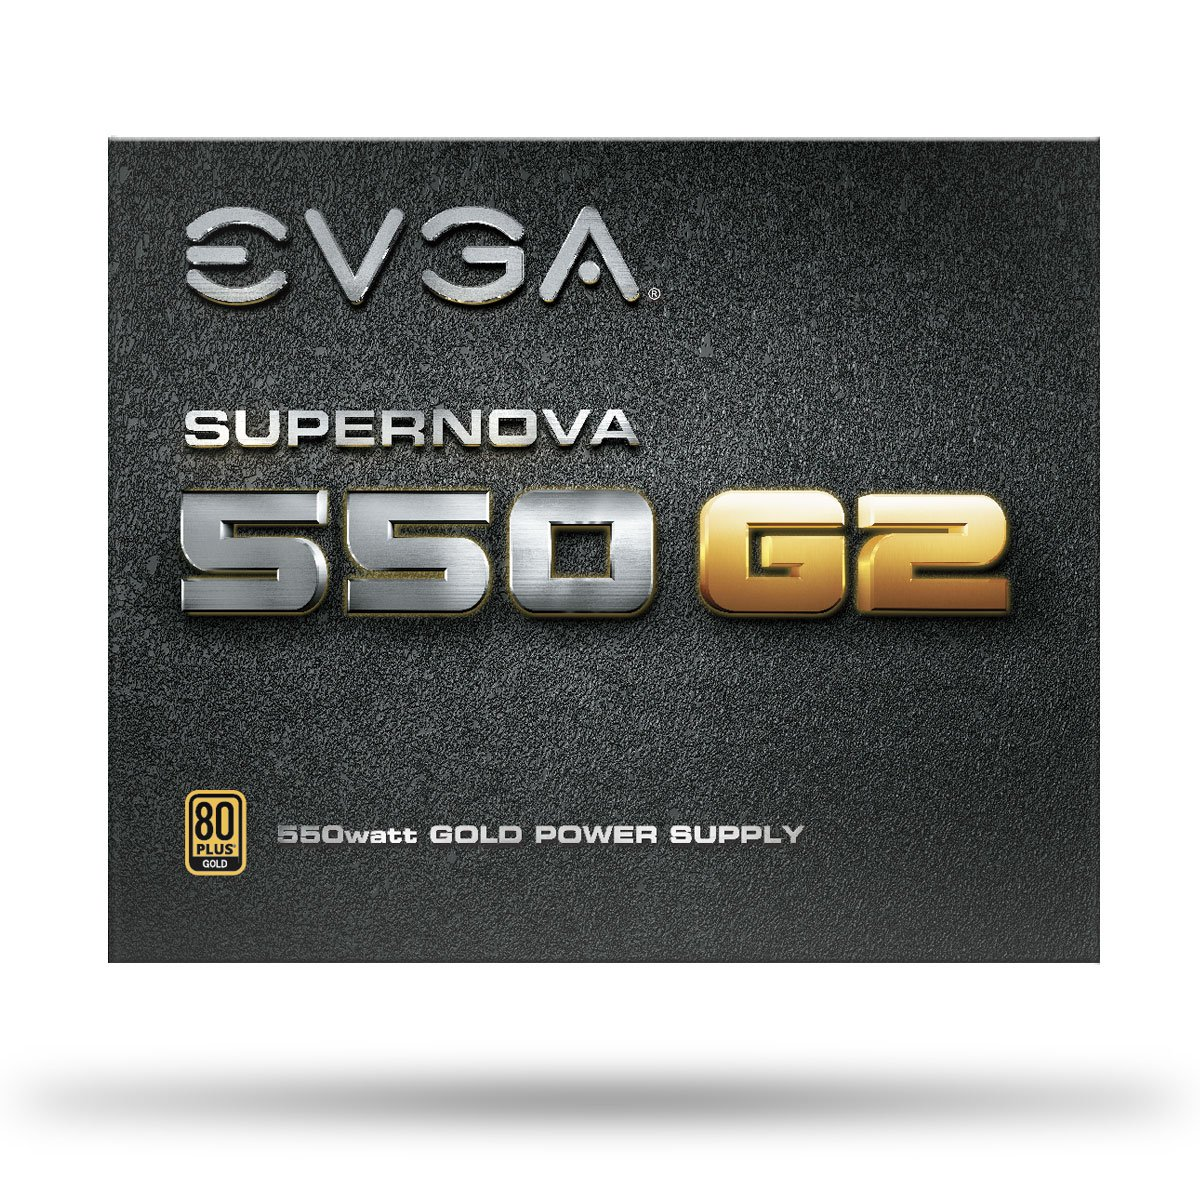 10 Year Warranty Fully Modular Compact 150mm Size Includes Power ON Self Tester 80 Plus Gold 1000W EVGA SuperNPVA 1000 G3 Eco Mode with New HDB Fan Power Supply 220-G3-1000-X1